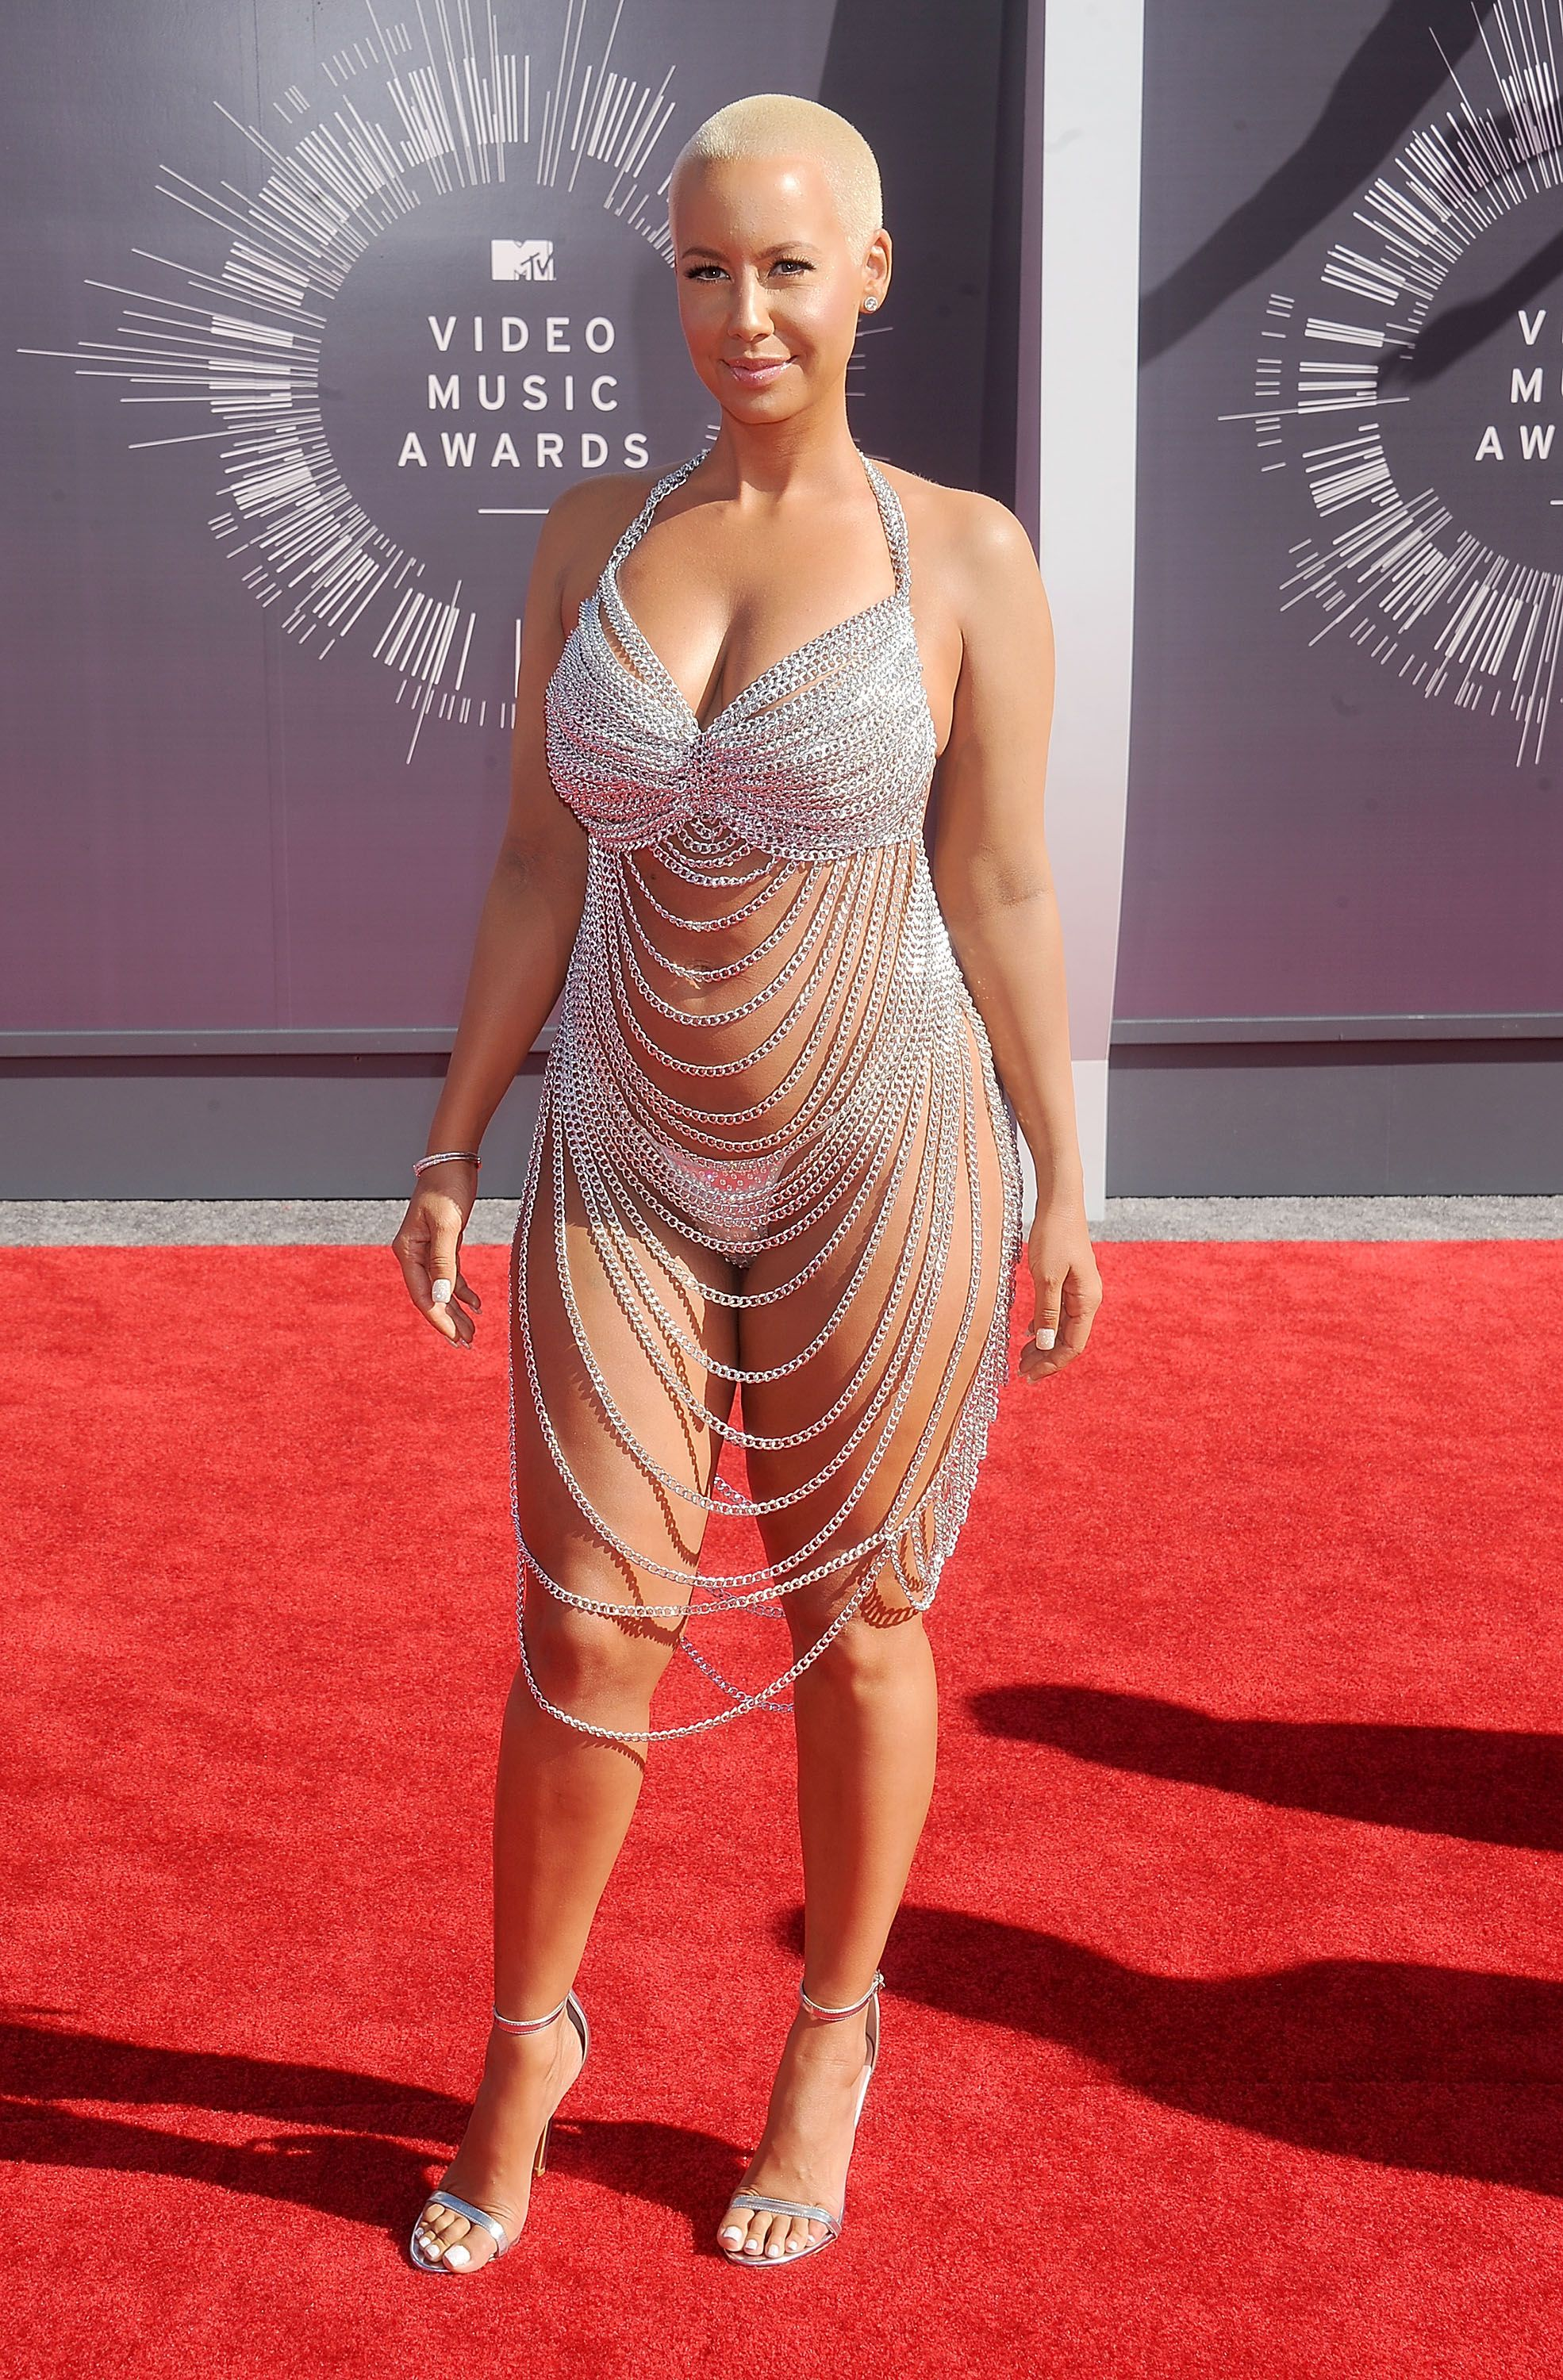 Crazy Celebrity Outfits We'll Never Forget advise